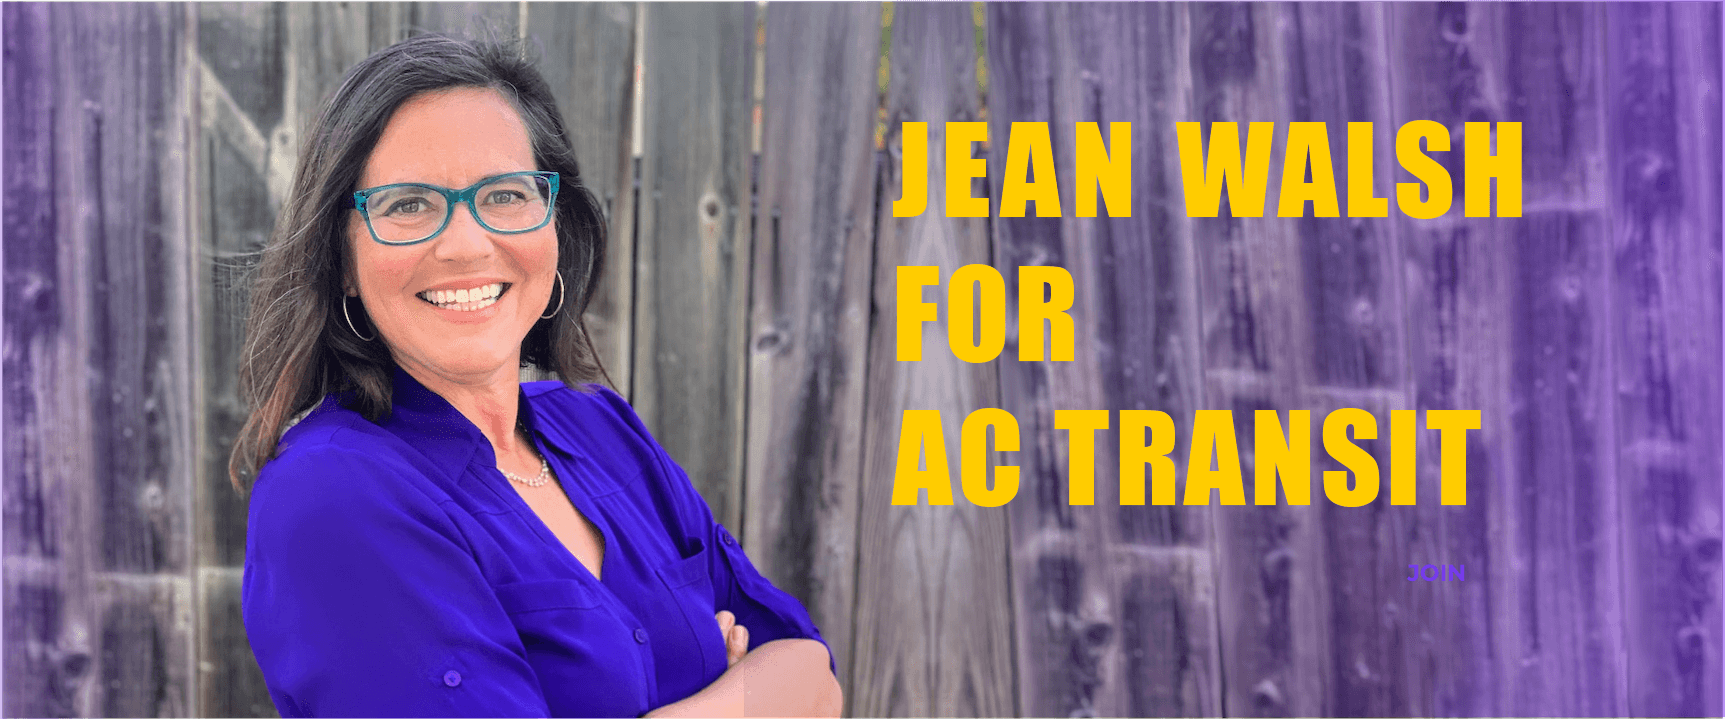 Jean Walsh for AC Transit